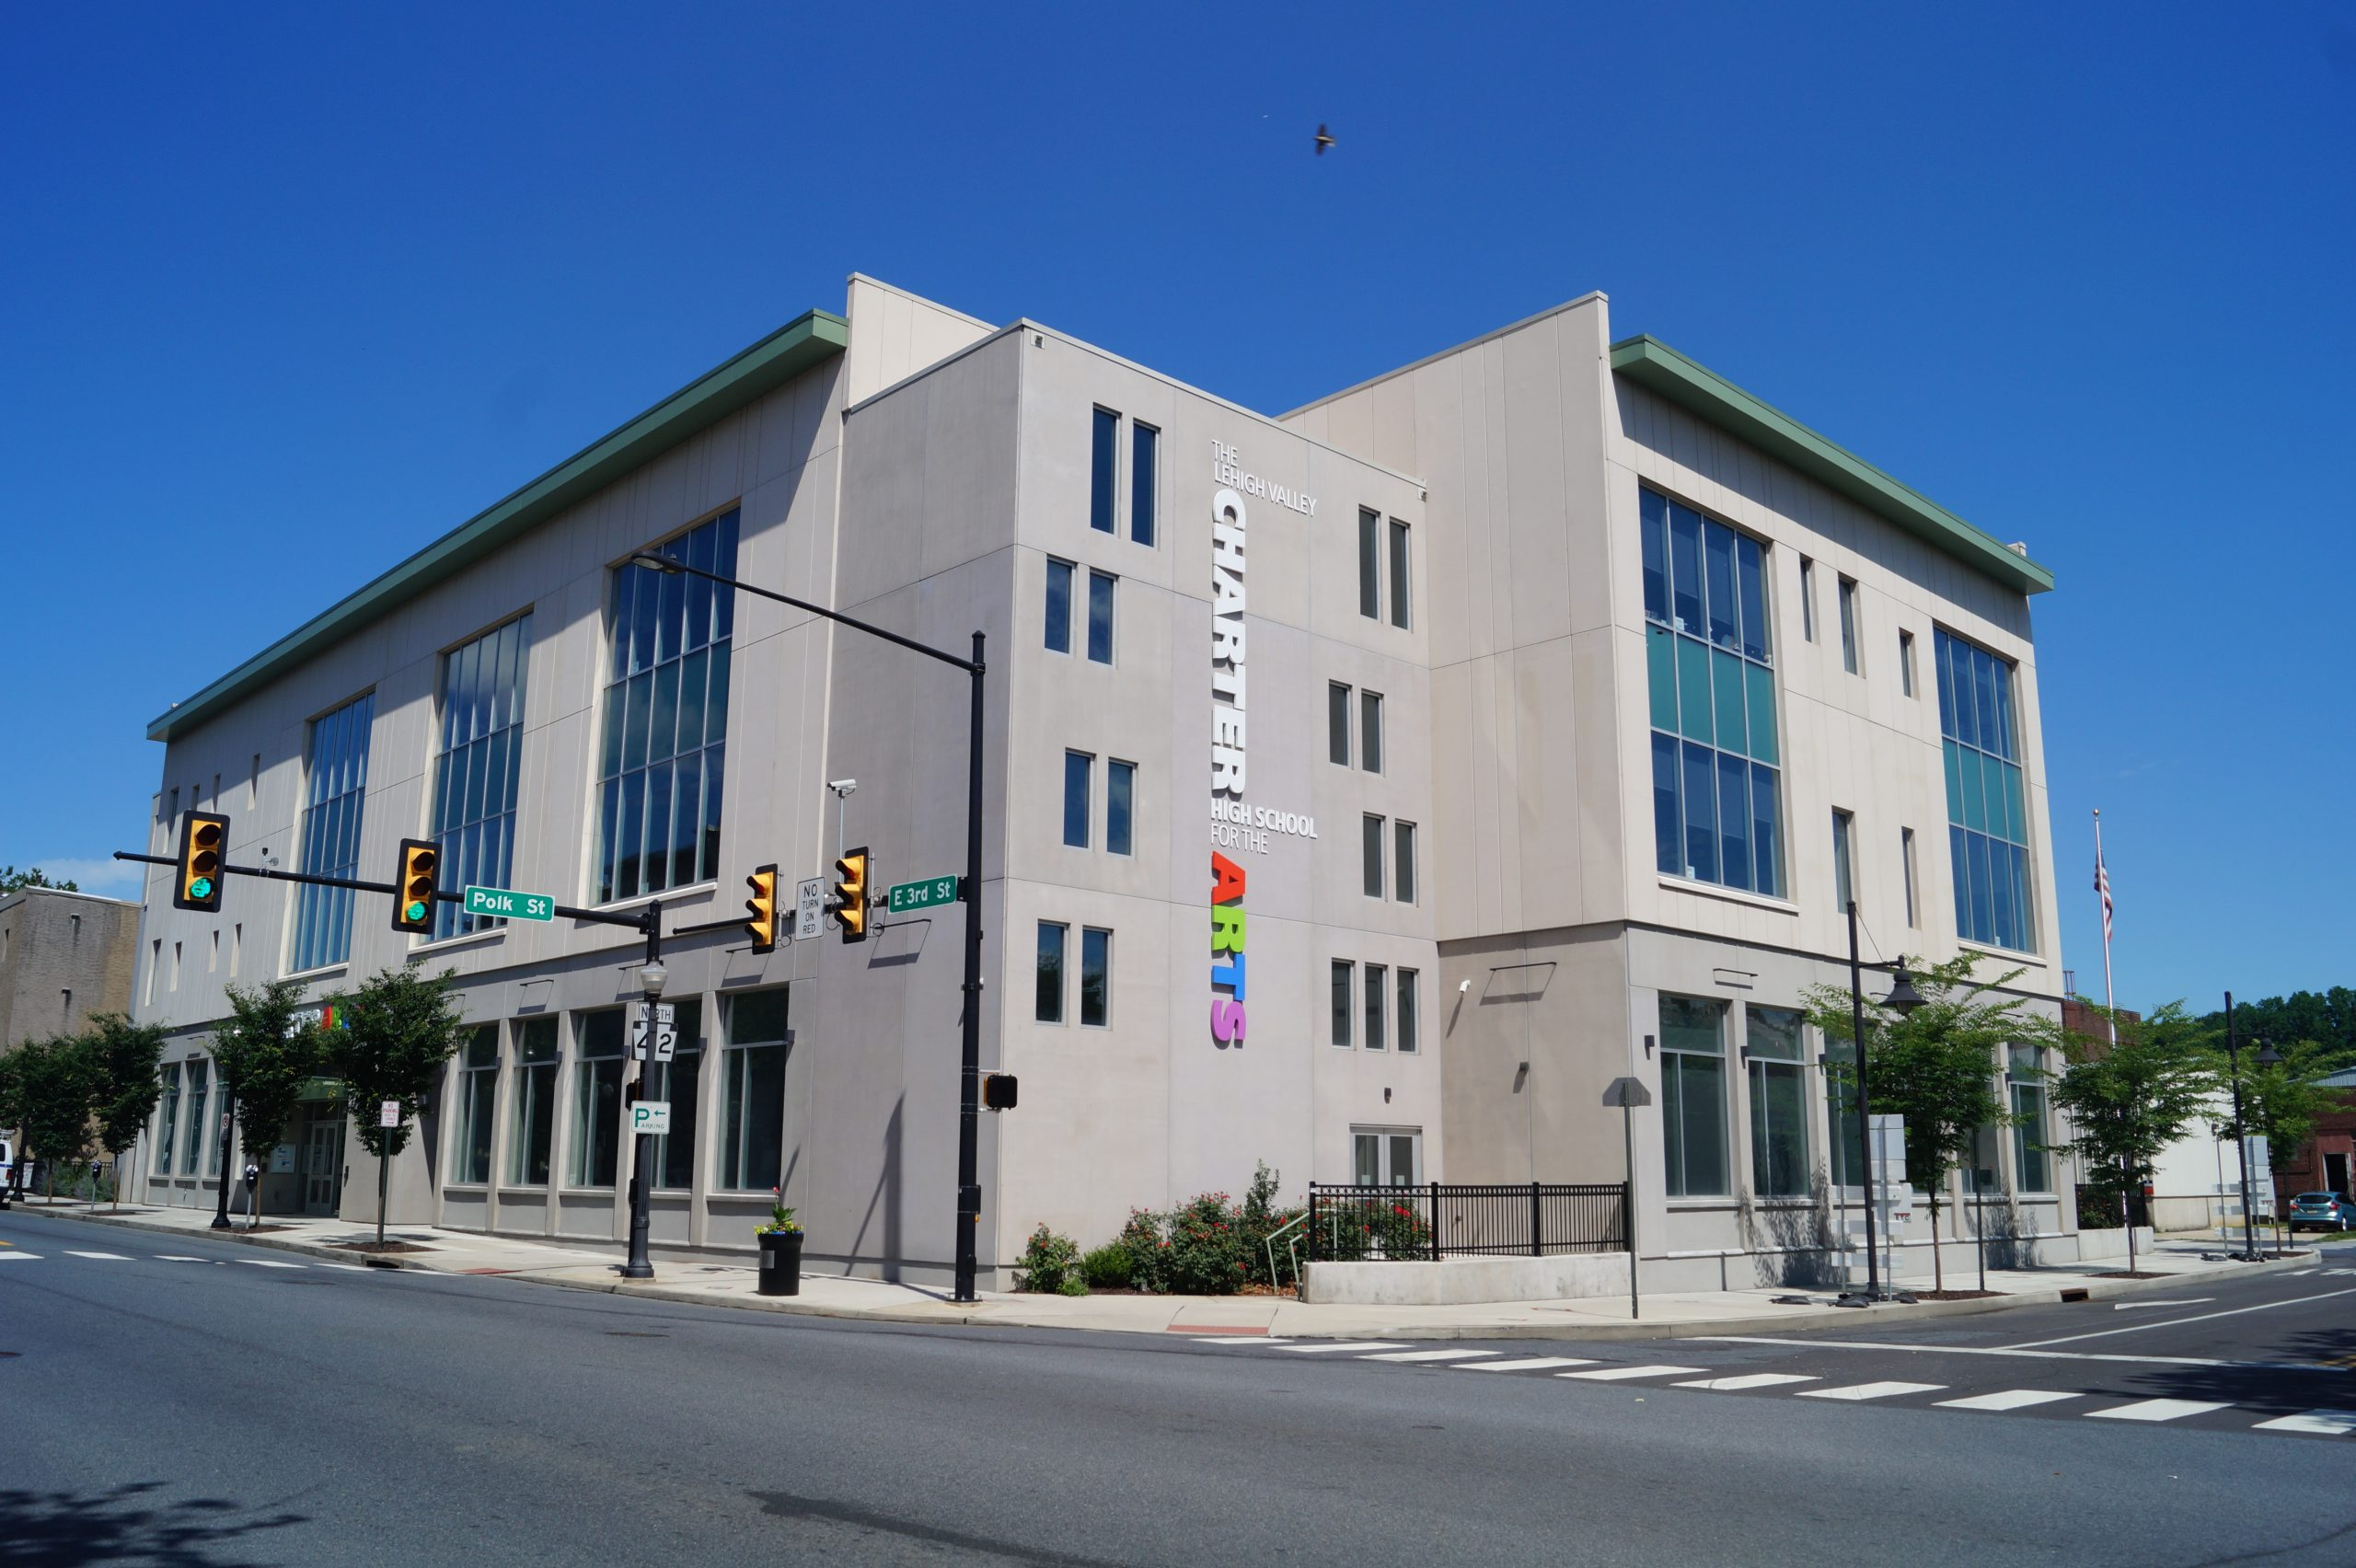 The Lehigh Valley Charter High School for the Arts